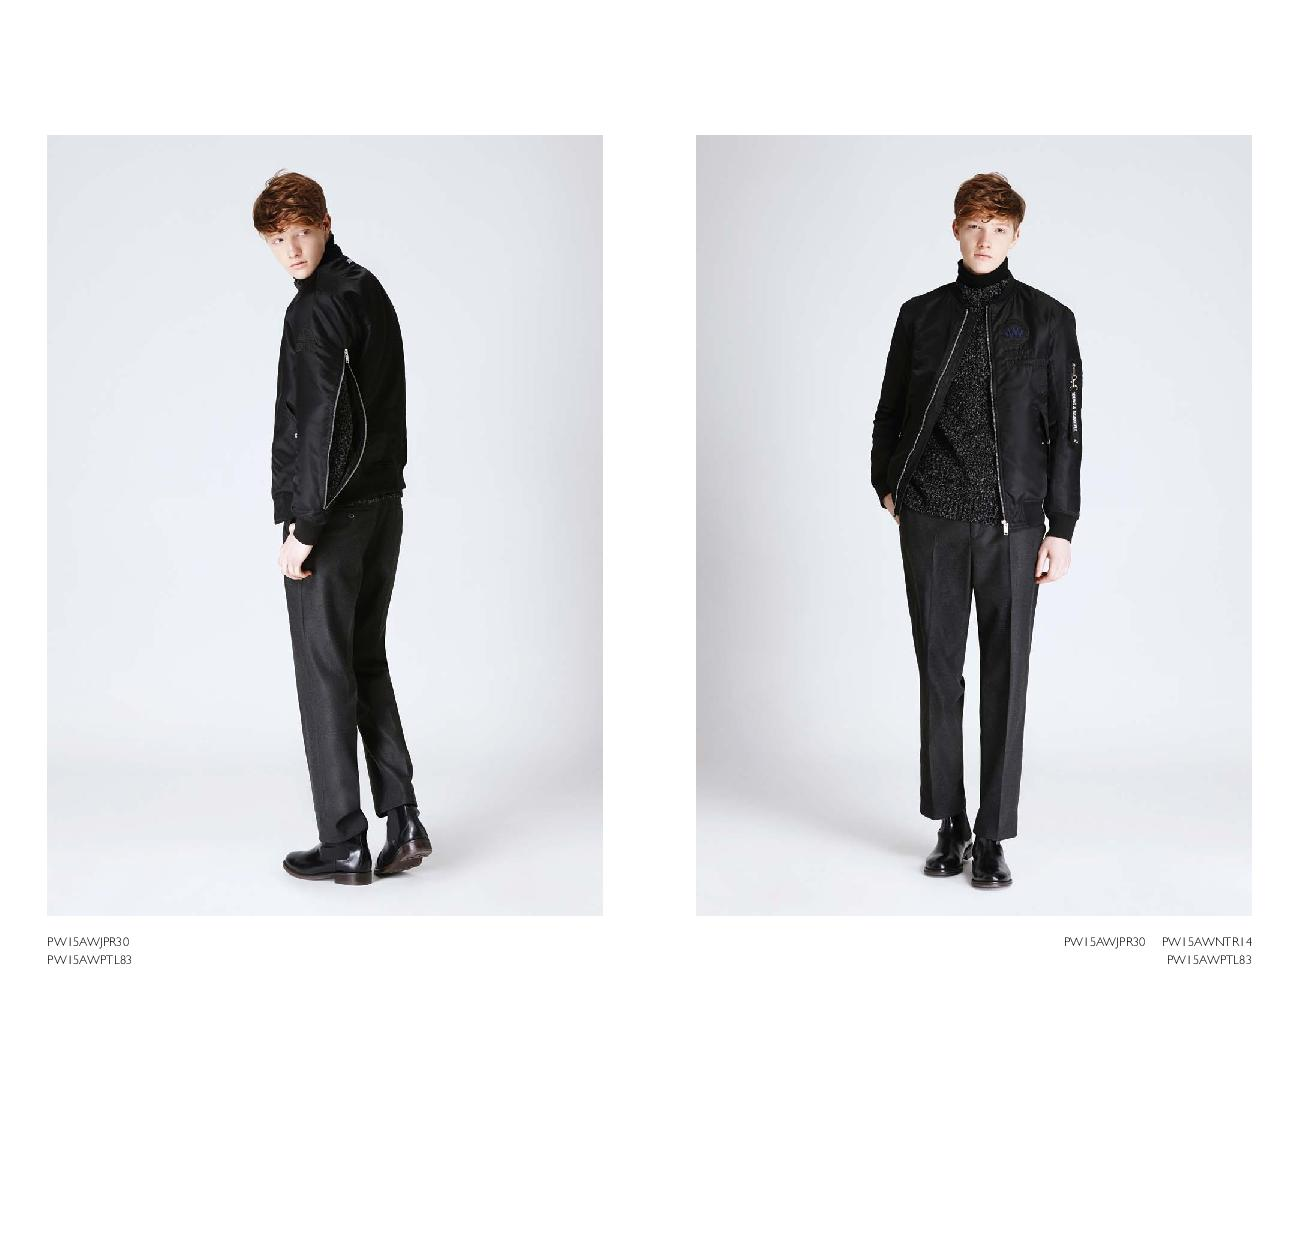 PLAC_15AW_LOOKBOOK (4)-page-018